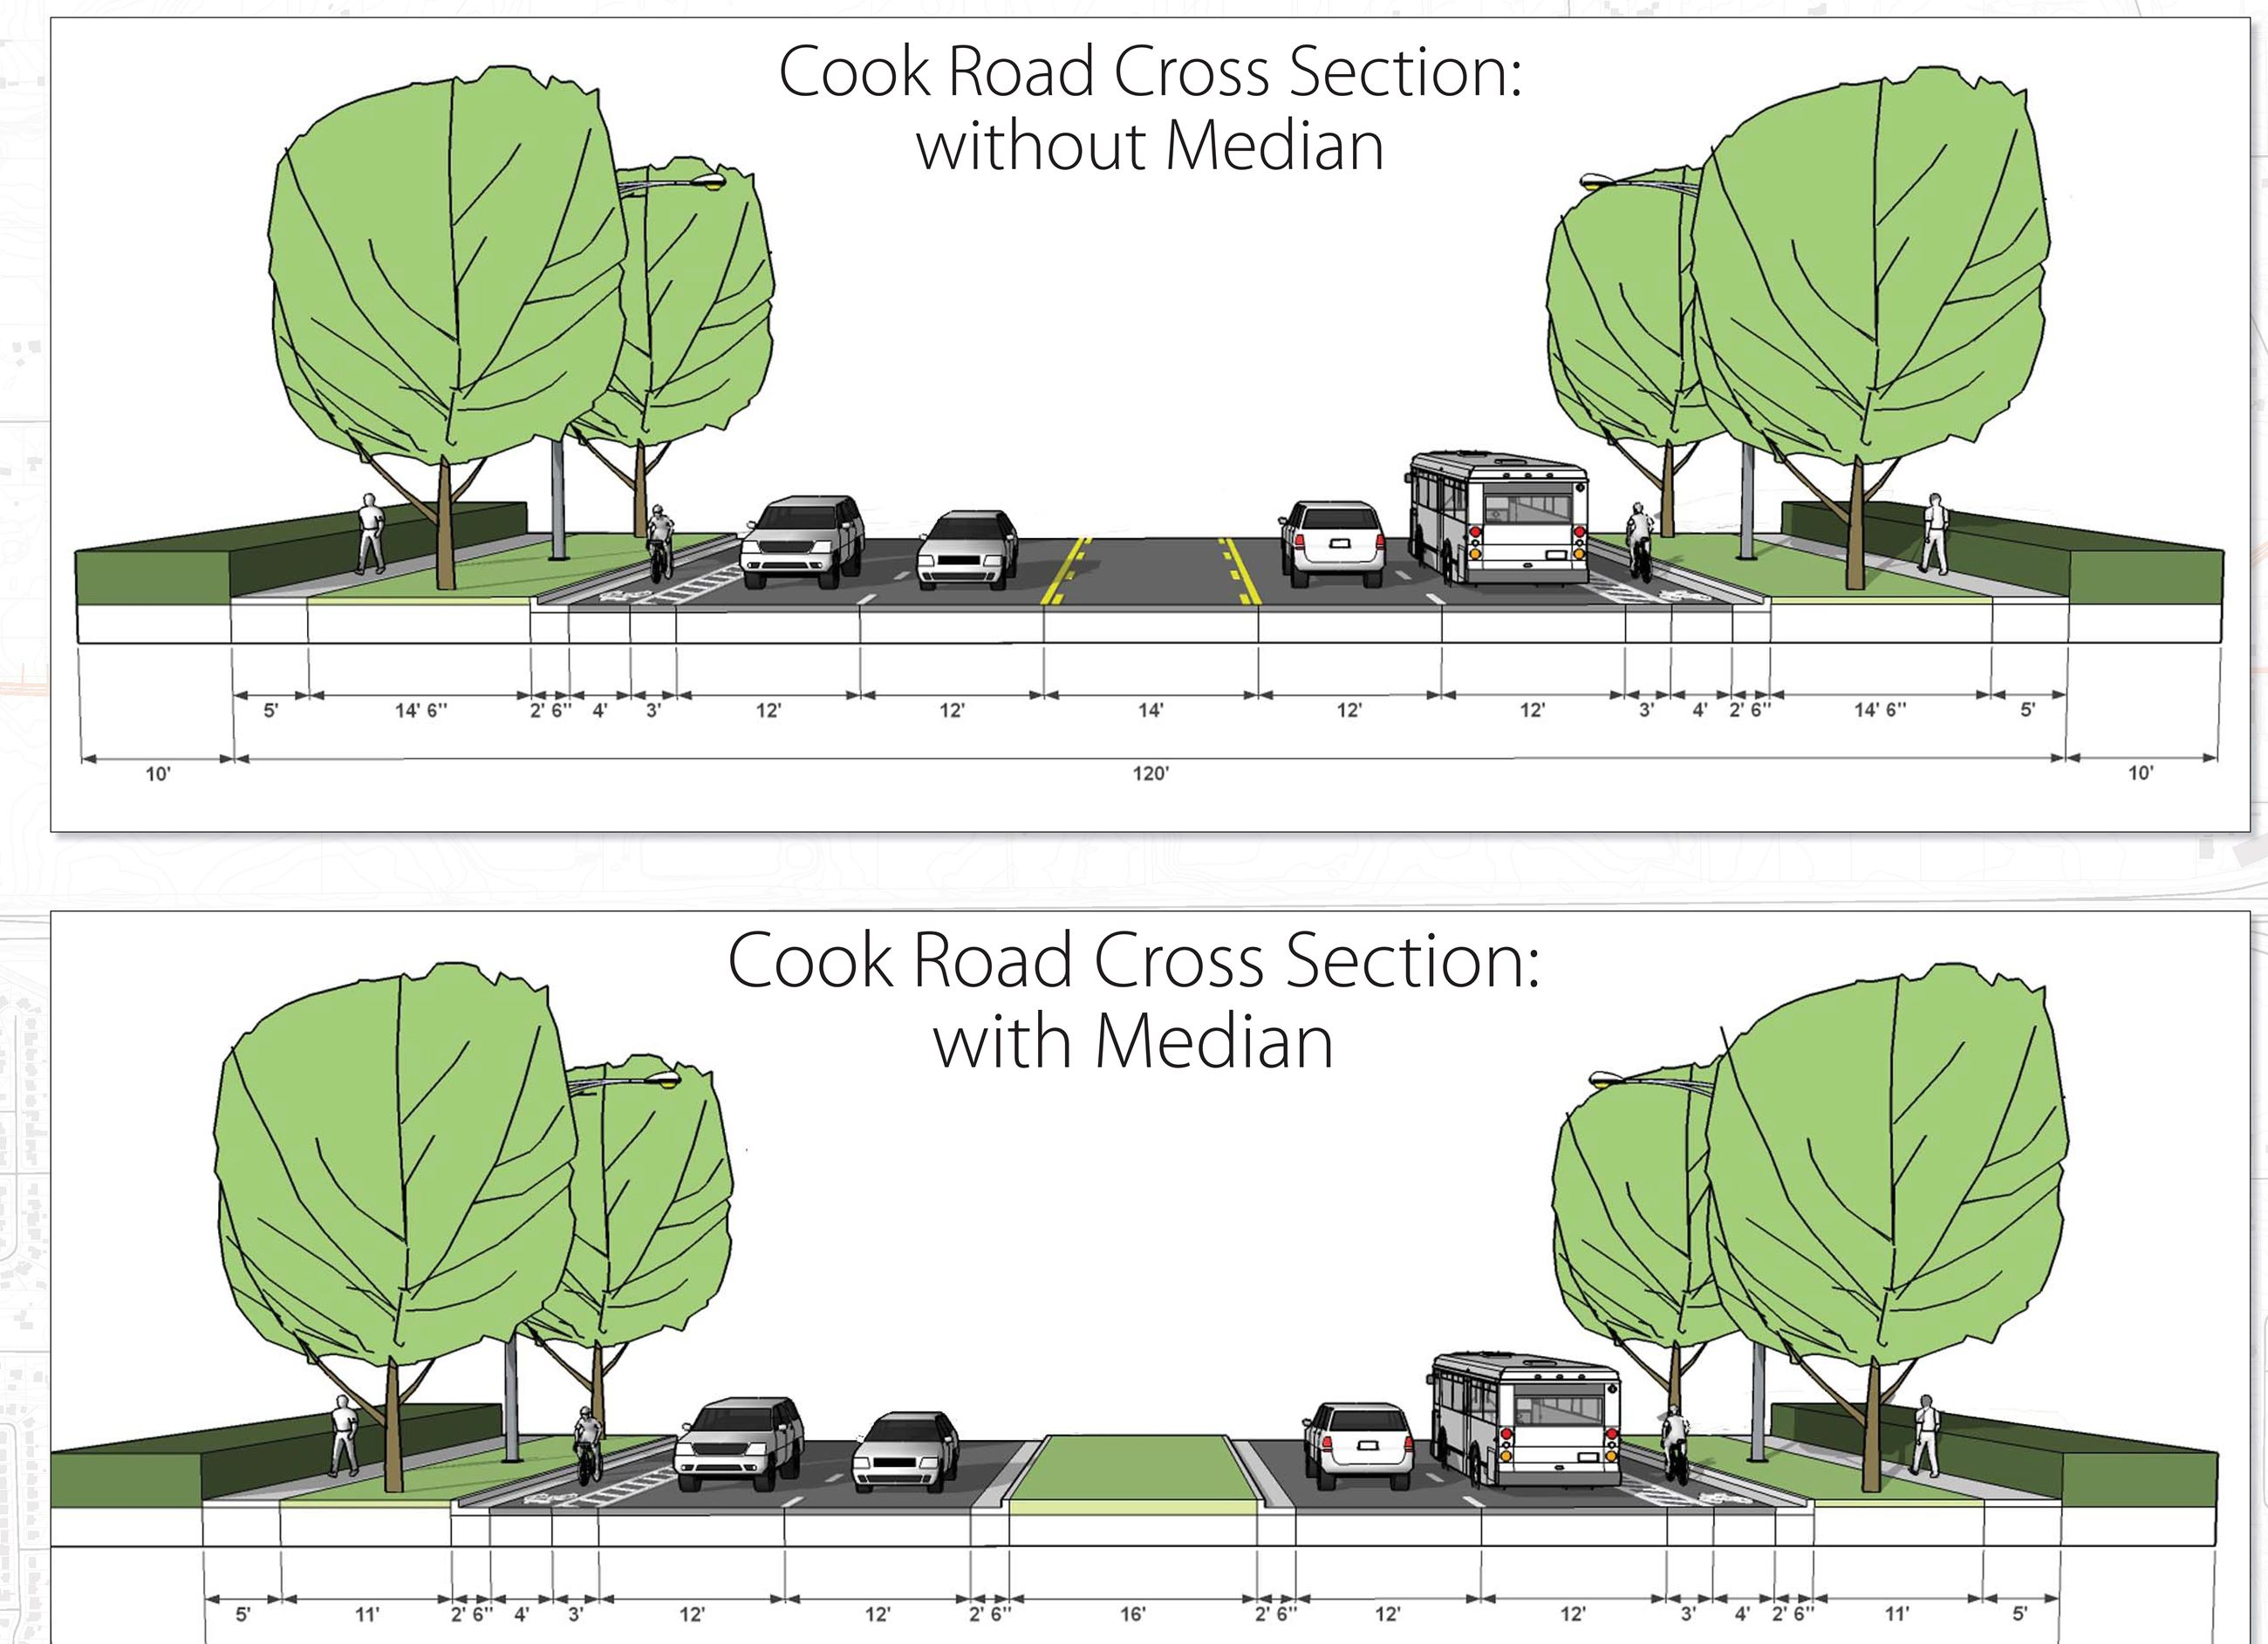 I-10/Cook Road Cross Section drawing